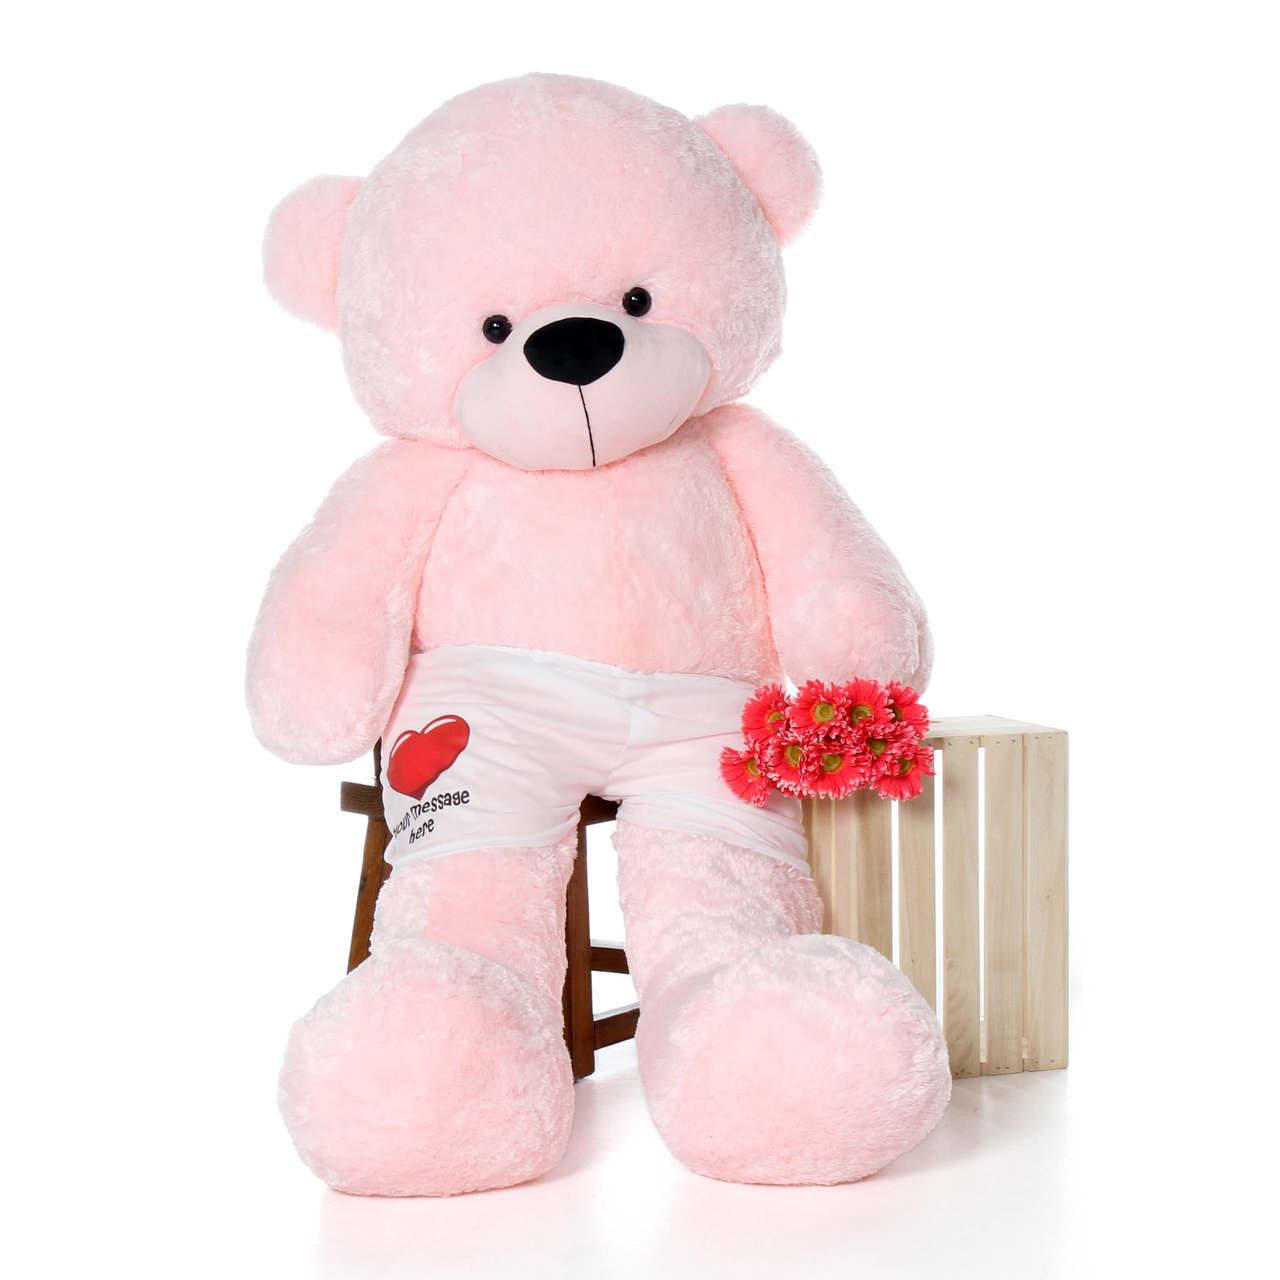 6 Foot Pink Giant Teddy Bear with Personalized Heart Boxers